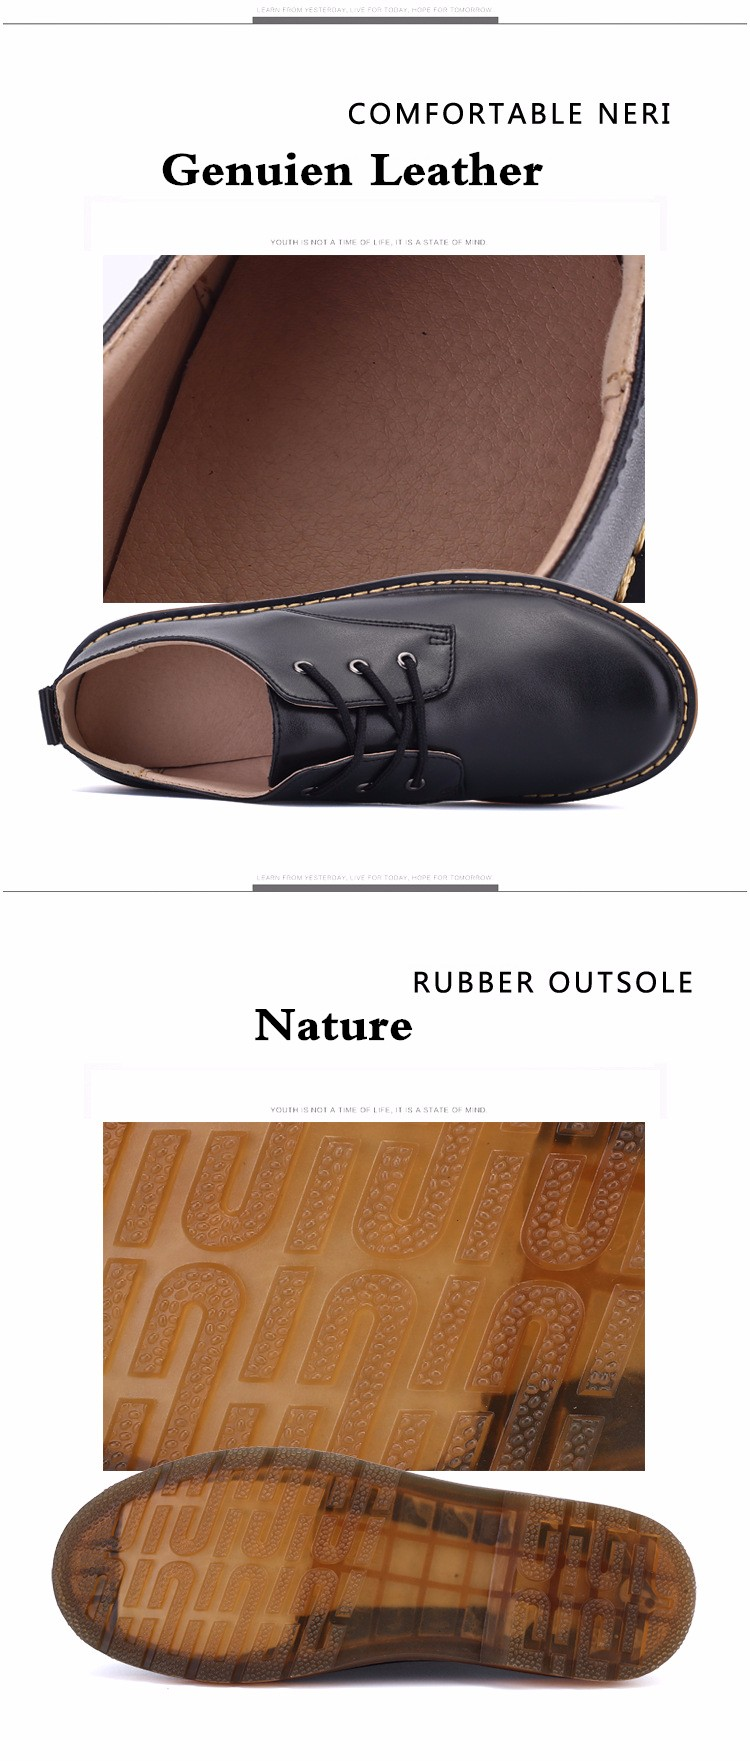 KUYUPP Fashion England Genuine Leather Shoes Women And Men Flats Oxfords Casual Lace Up Ladies Shoes Round Toe Men Loafers PX128 (13)